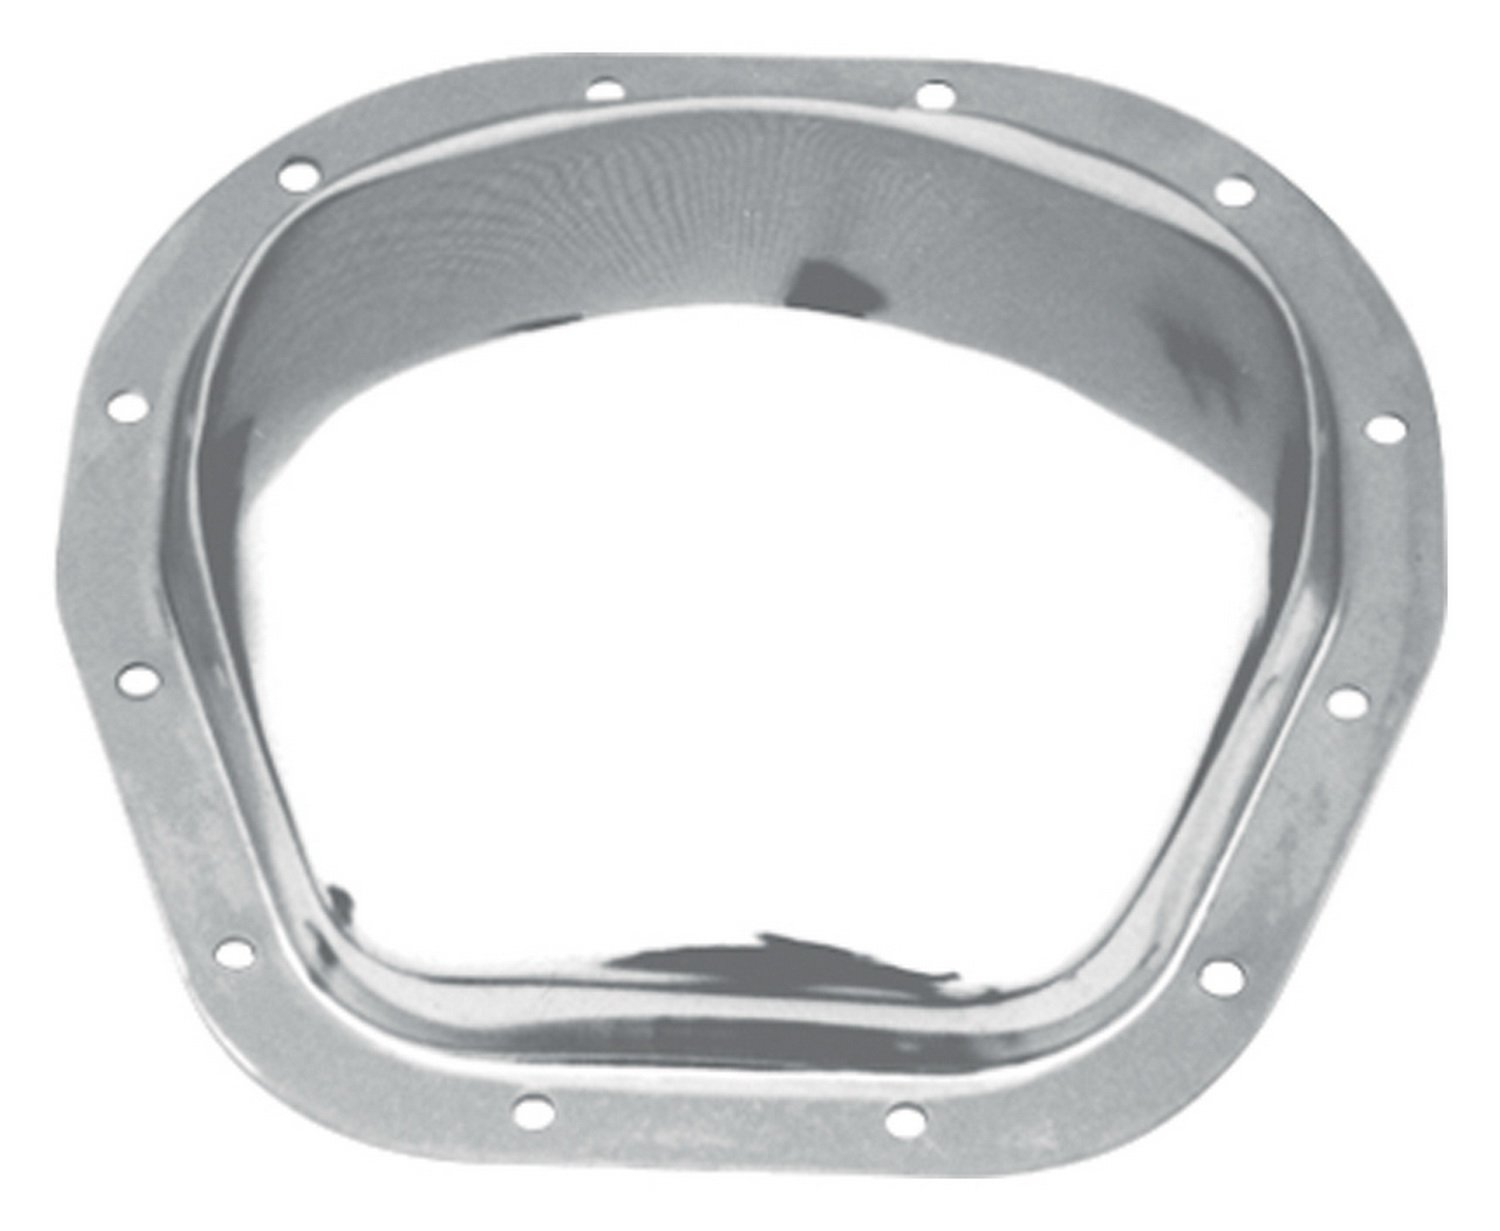 CSI 1314 Steel Differential Cover for Ford 12 bolt rear ends by CSI Accessories